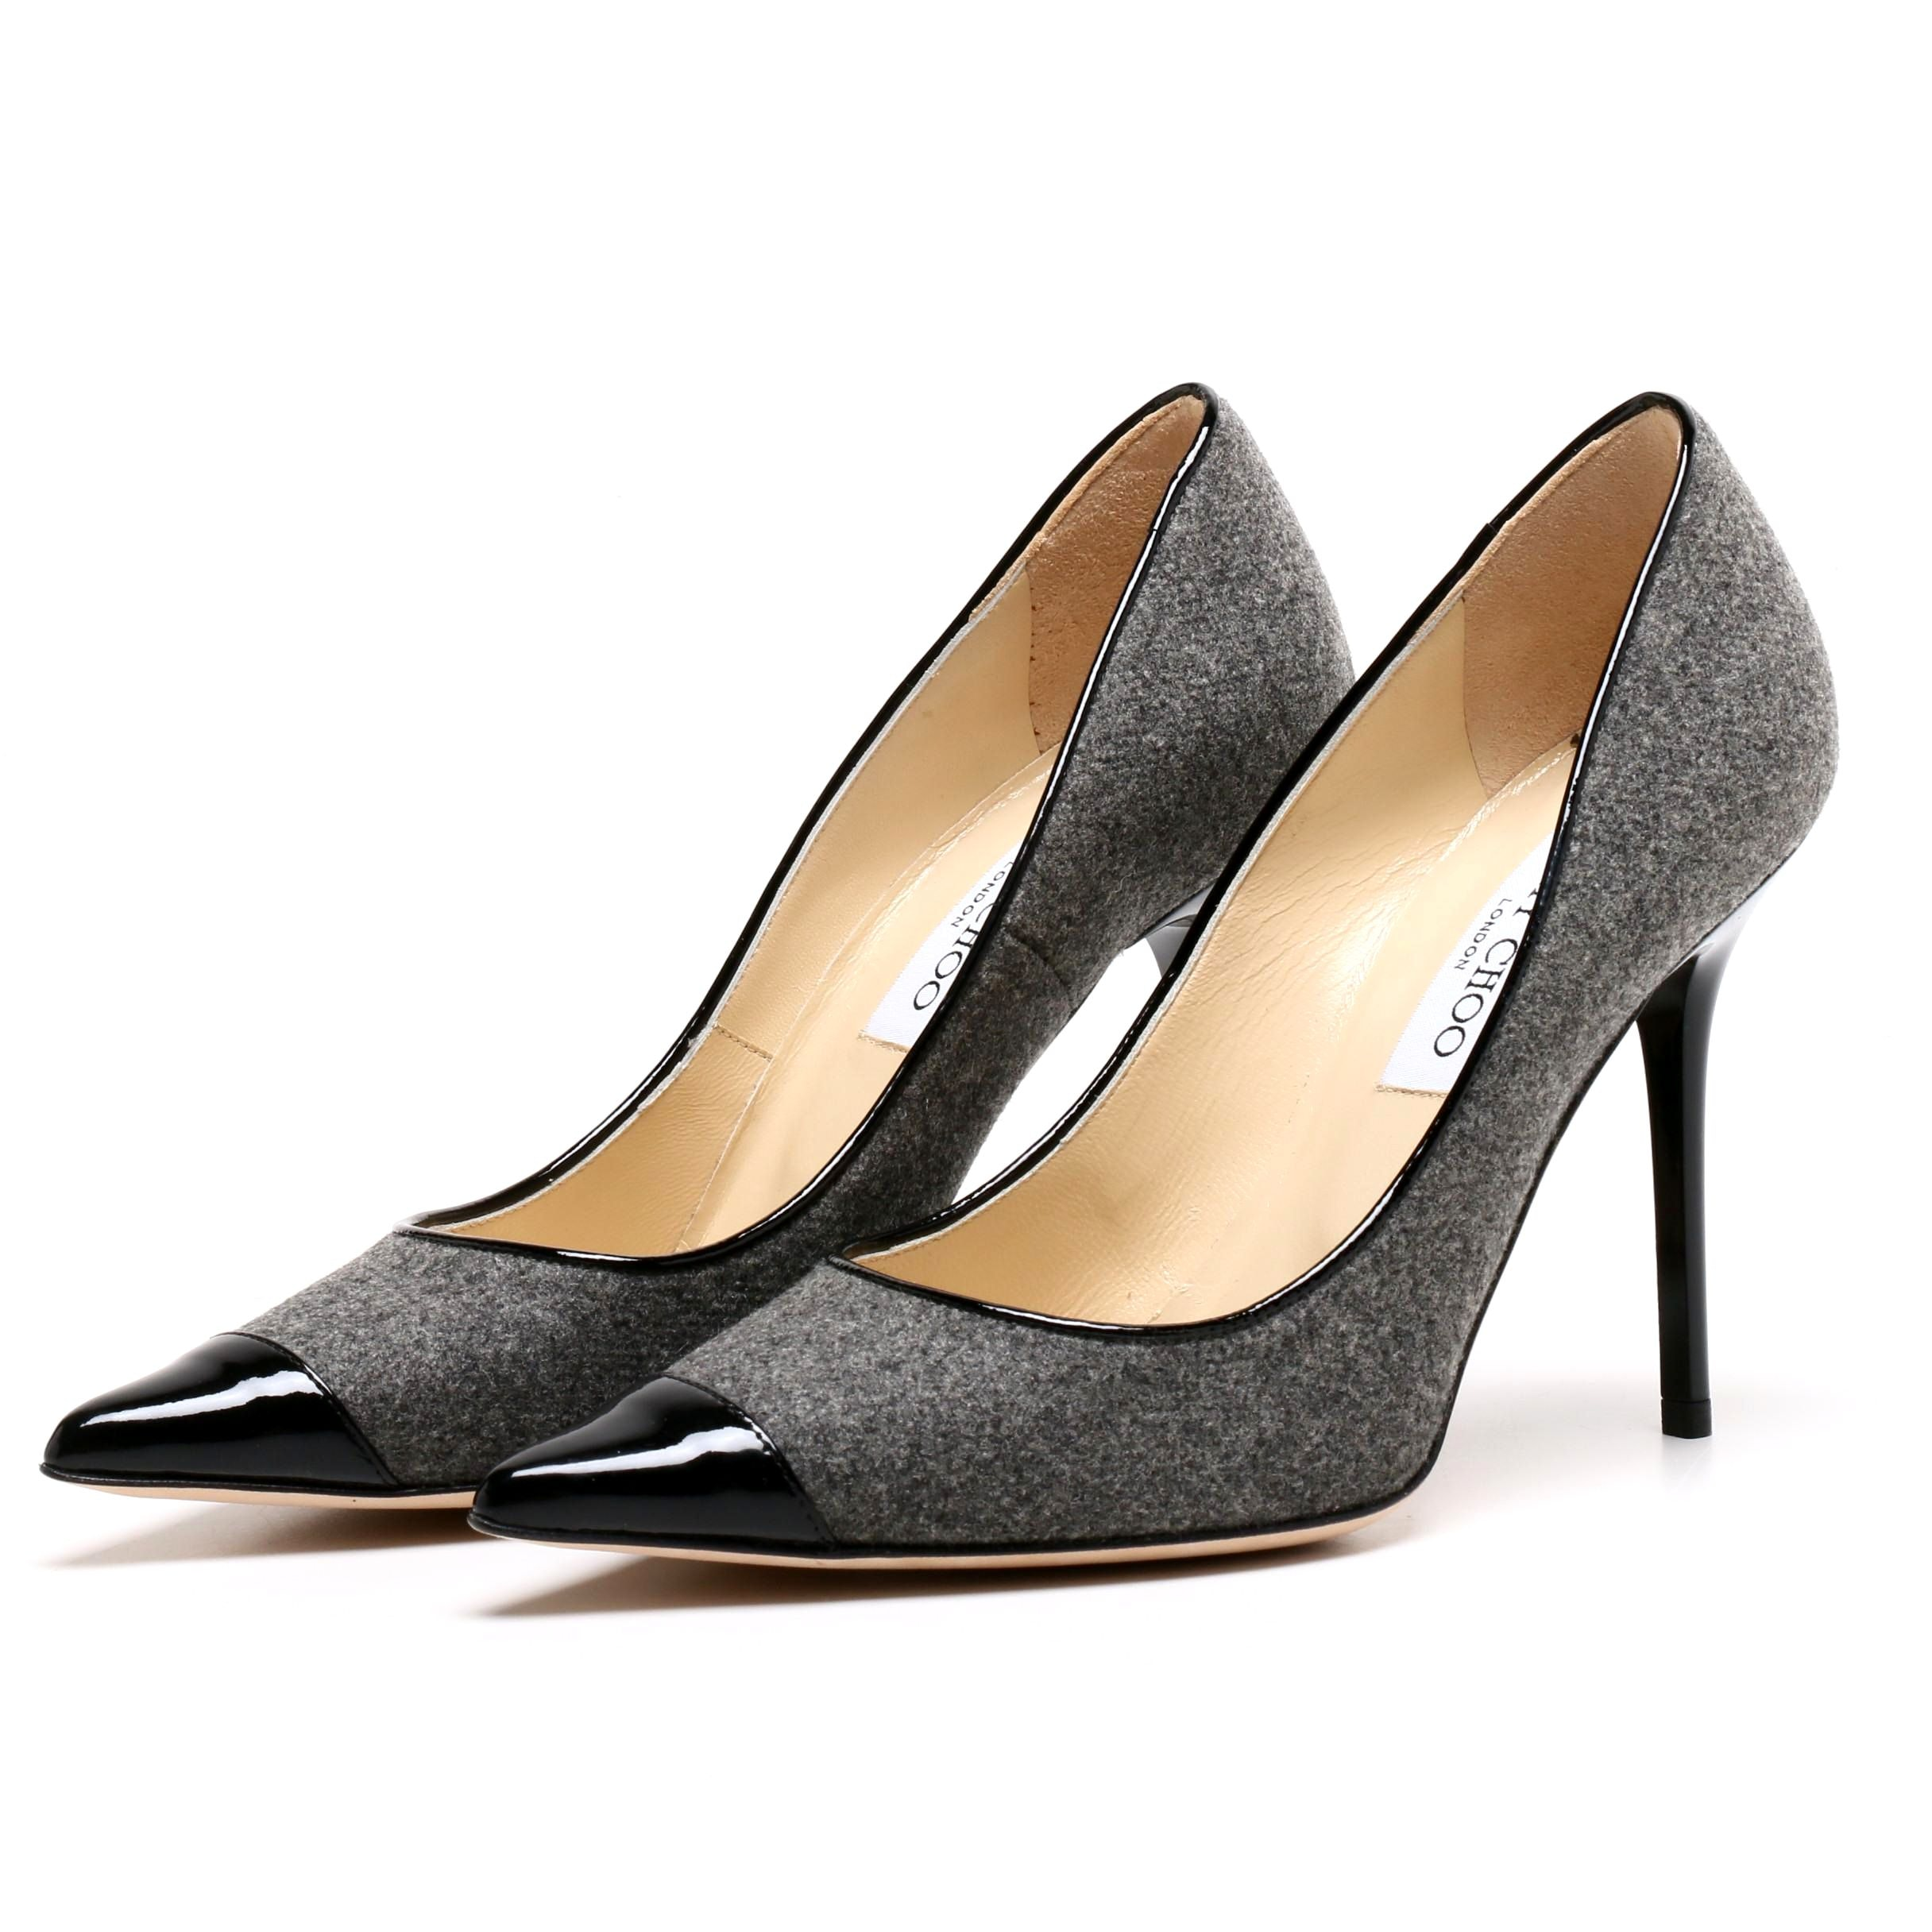 Jimmy Choo London Grey Wool and Black Patent Leather Pumps